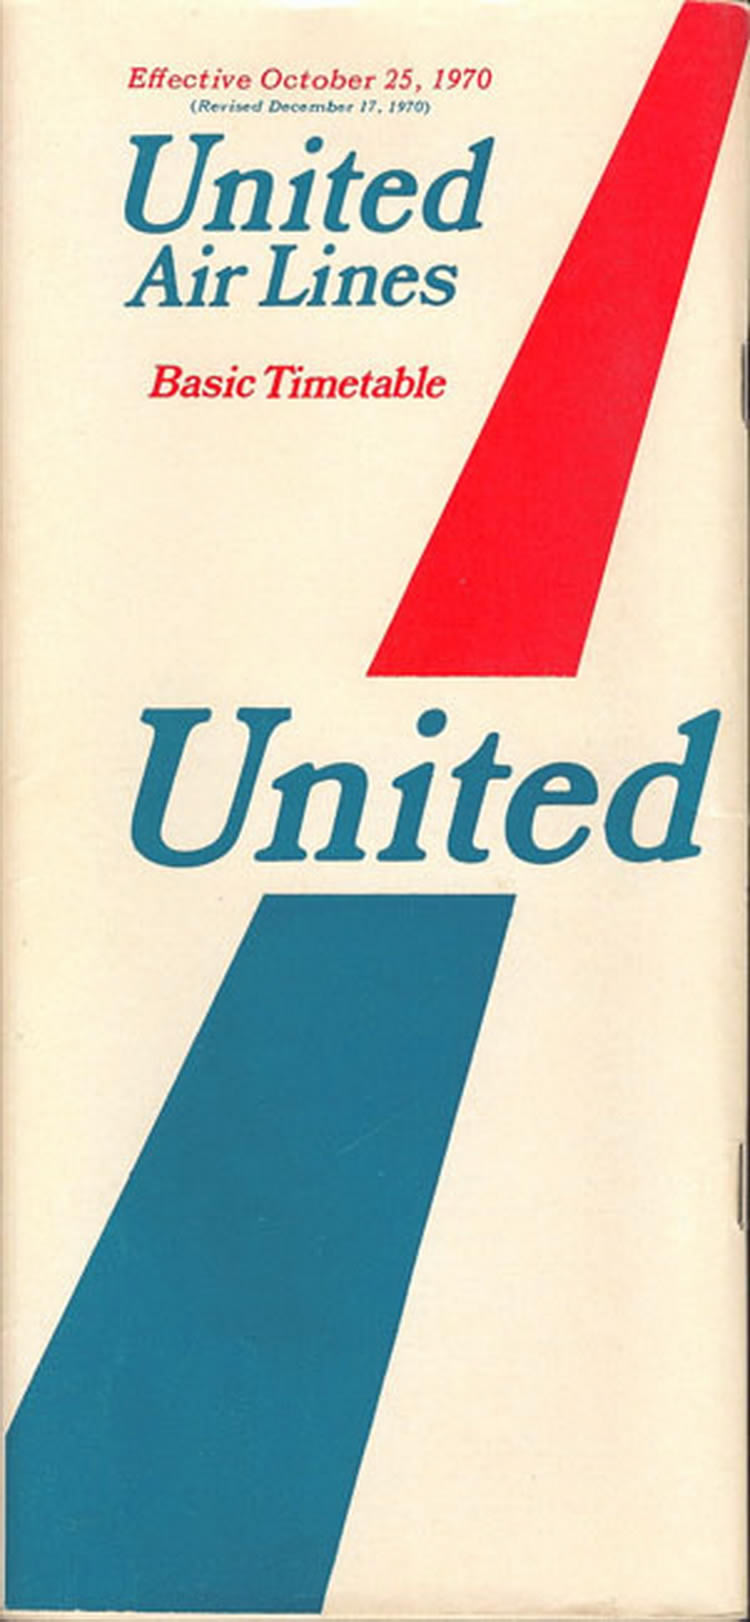 vintage airline timetable for united airlines